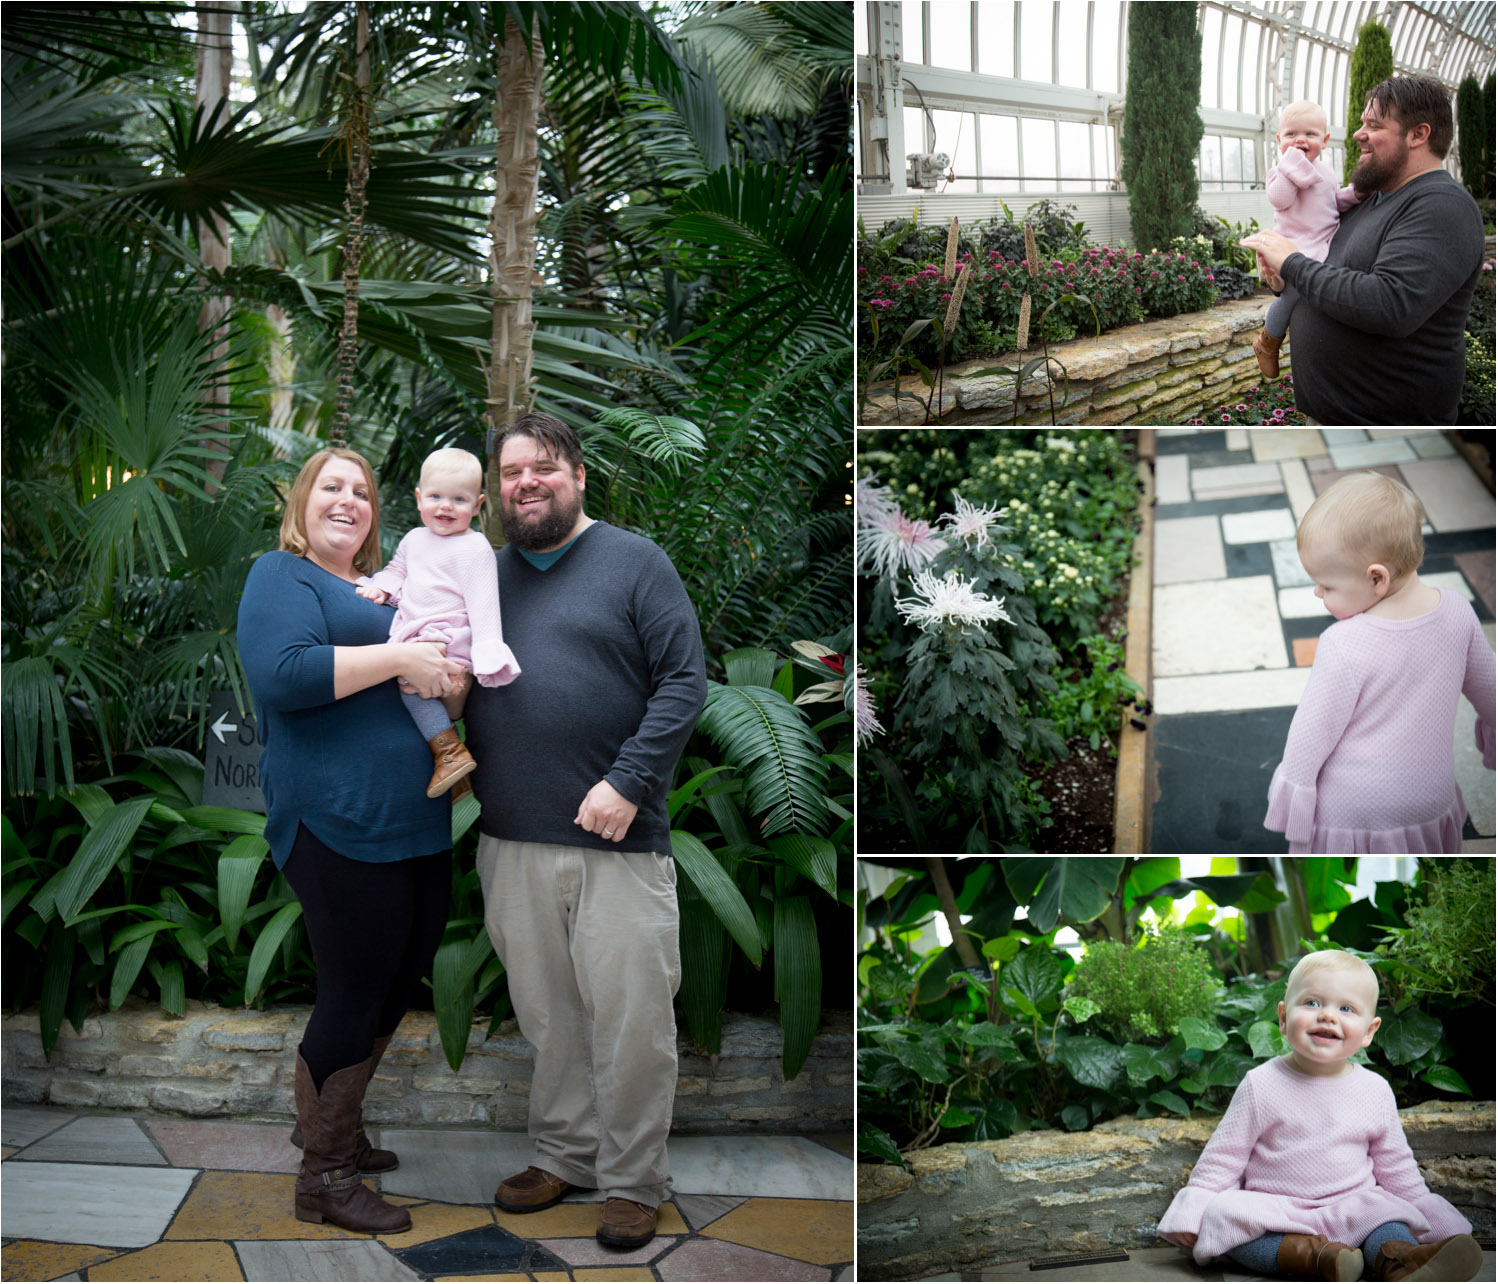 04-como-conservatory-family-photography-session-one-year-old-busy-happy-girl-mahonen-photography.jpg